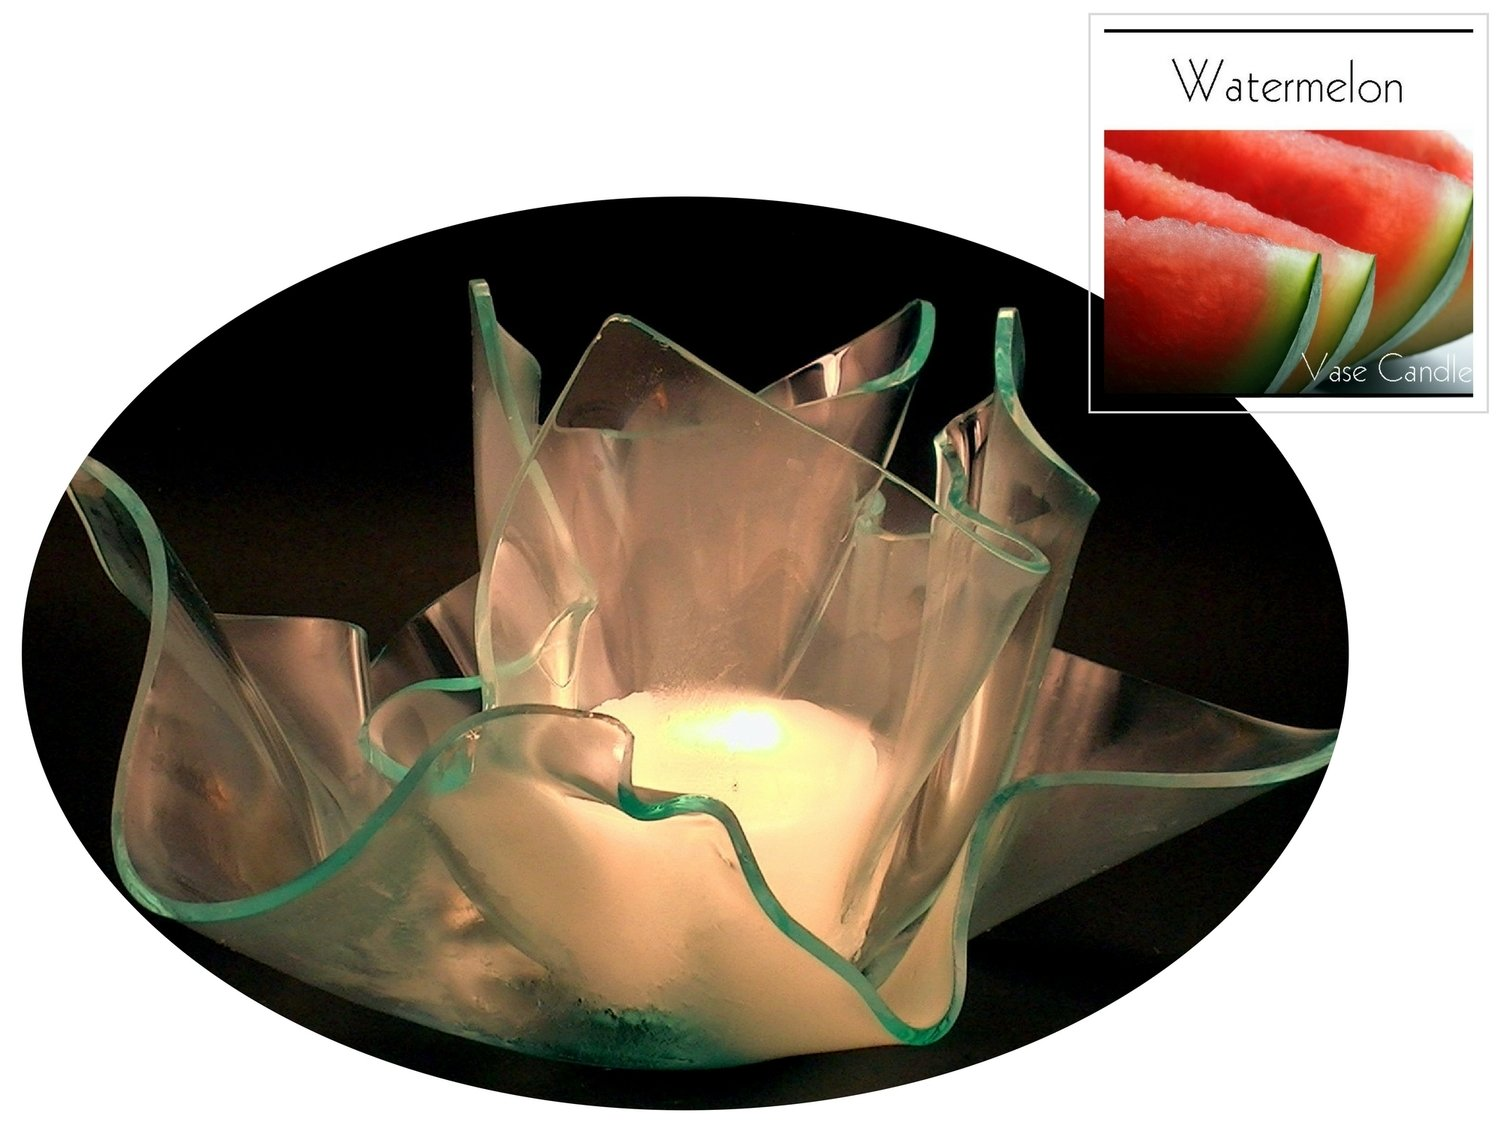 2 Watermelon Candle Refills | Clear Satin Vase & Dish Set